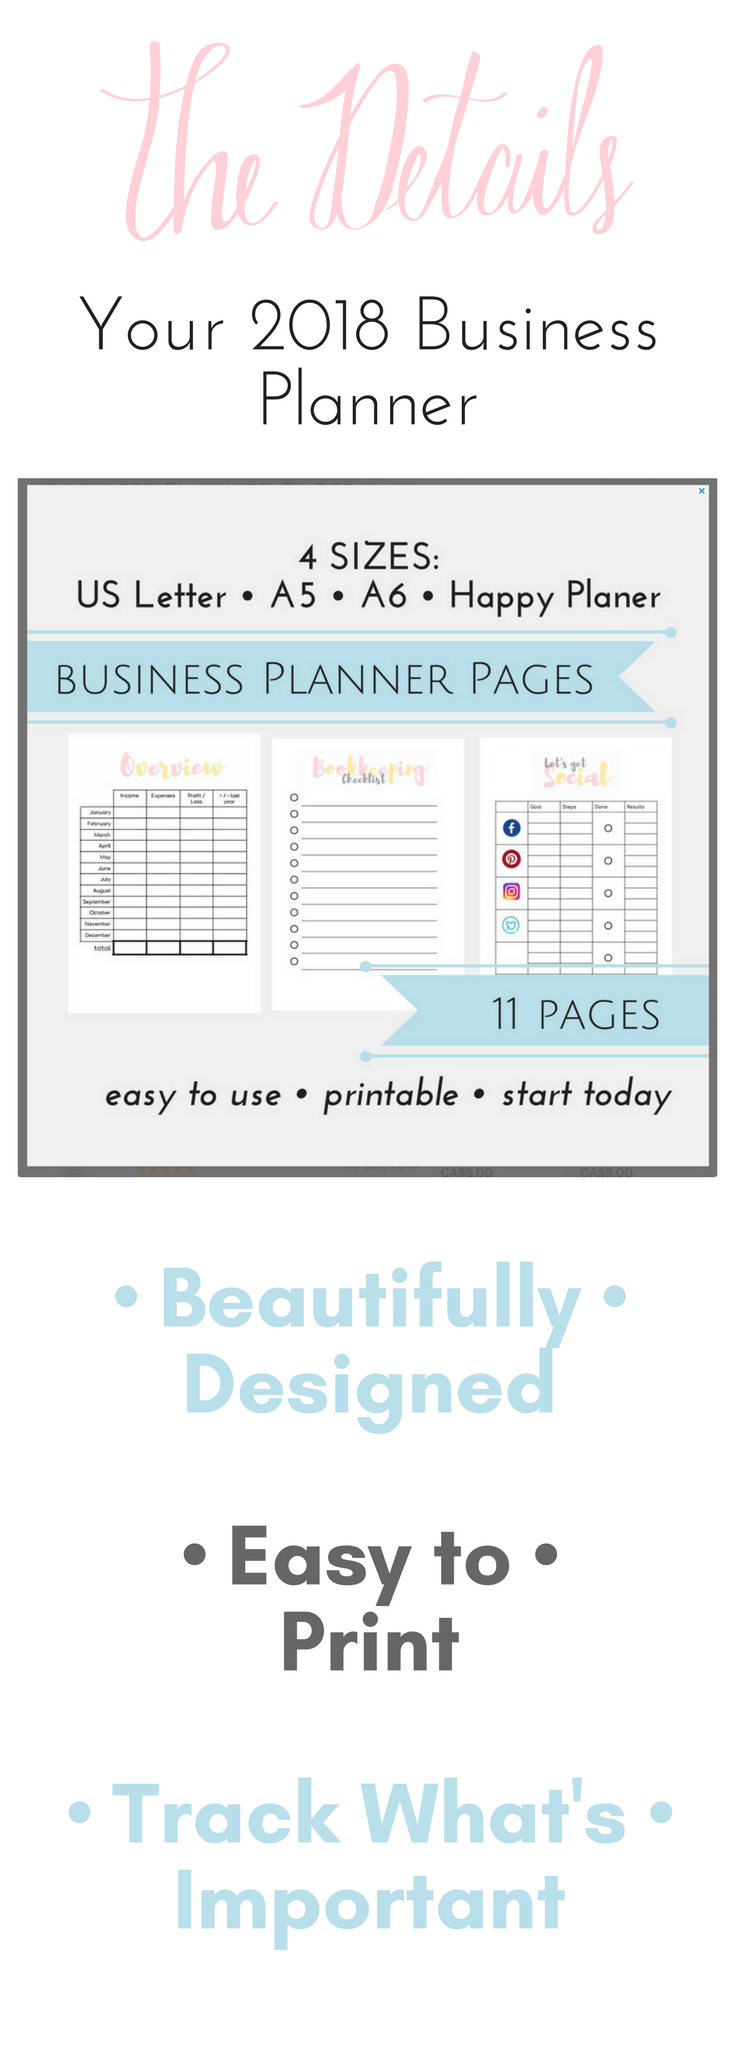 Small Business Planner Social Media Template Budget